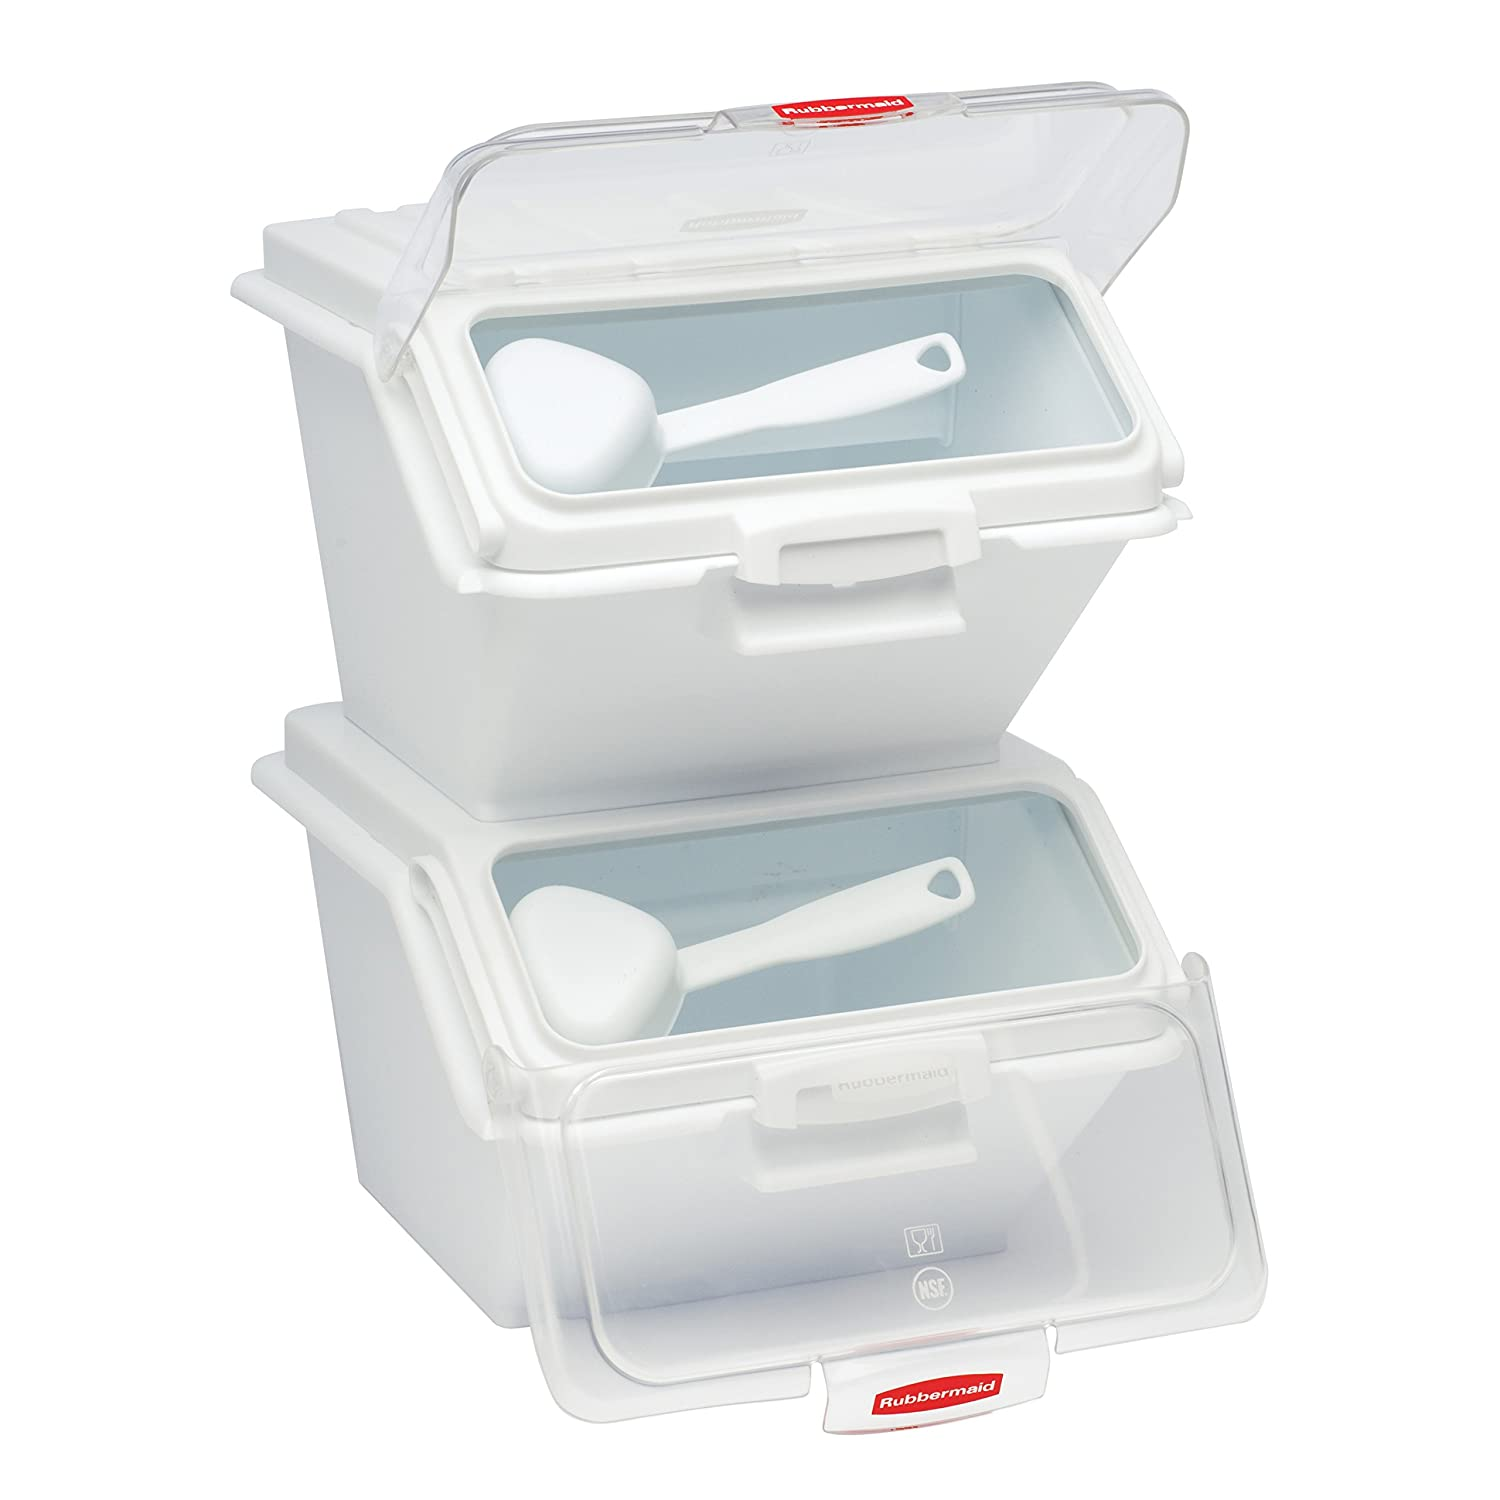 Amazoncom Rubbermaid Commercial ProSave Shelf Storage Ingredient